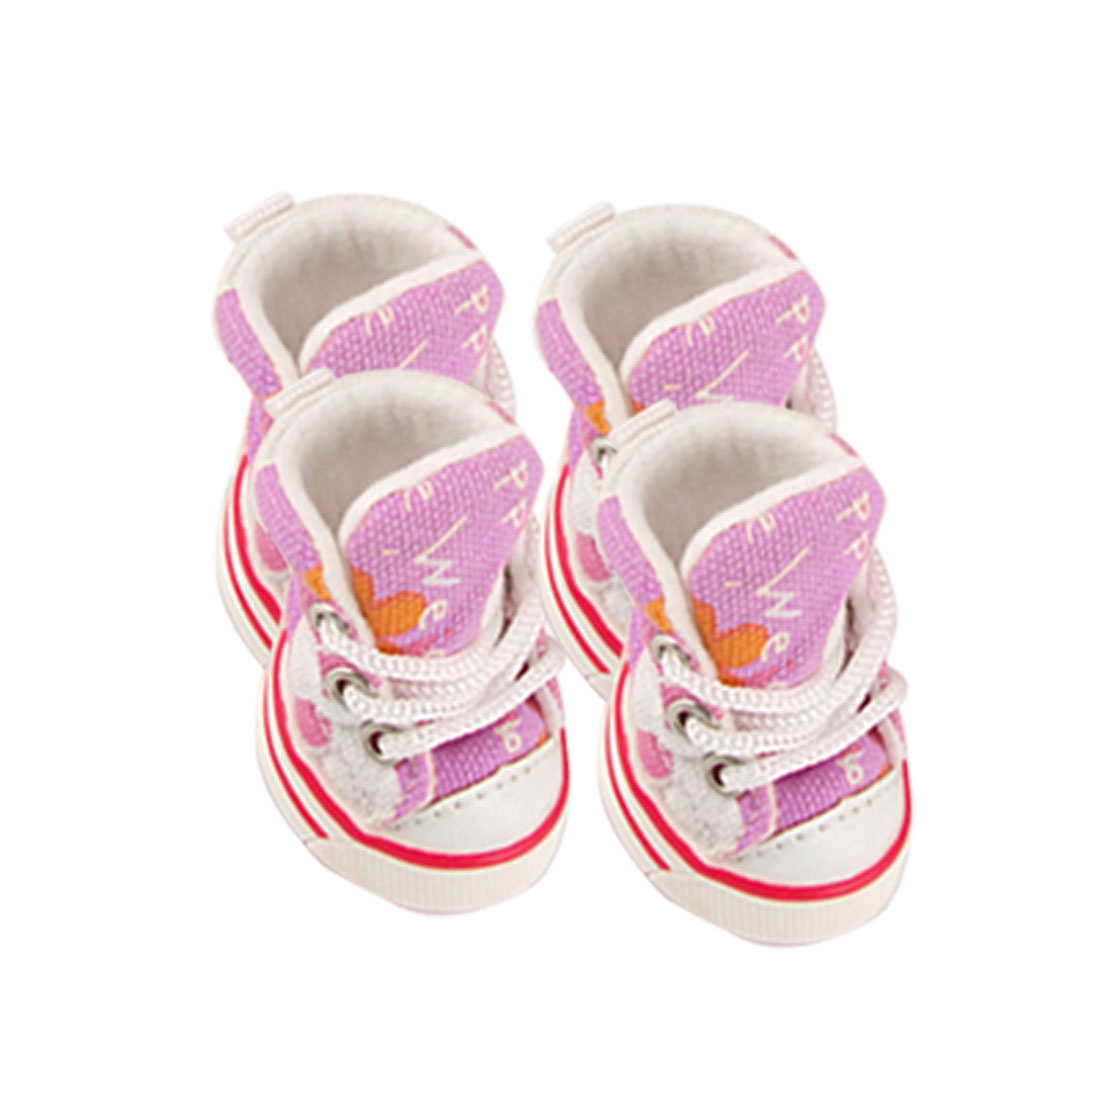 4 Pcs Flower Lettern Printed Pet Dog Canvas Boot Pink Sneakers Size 5